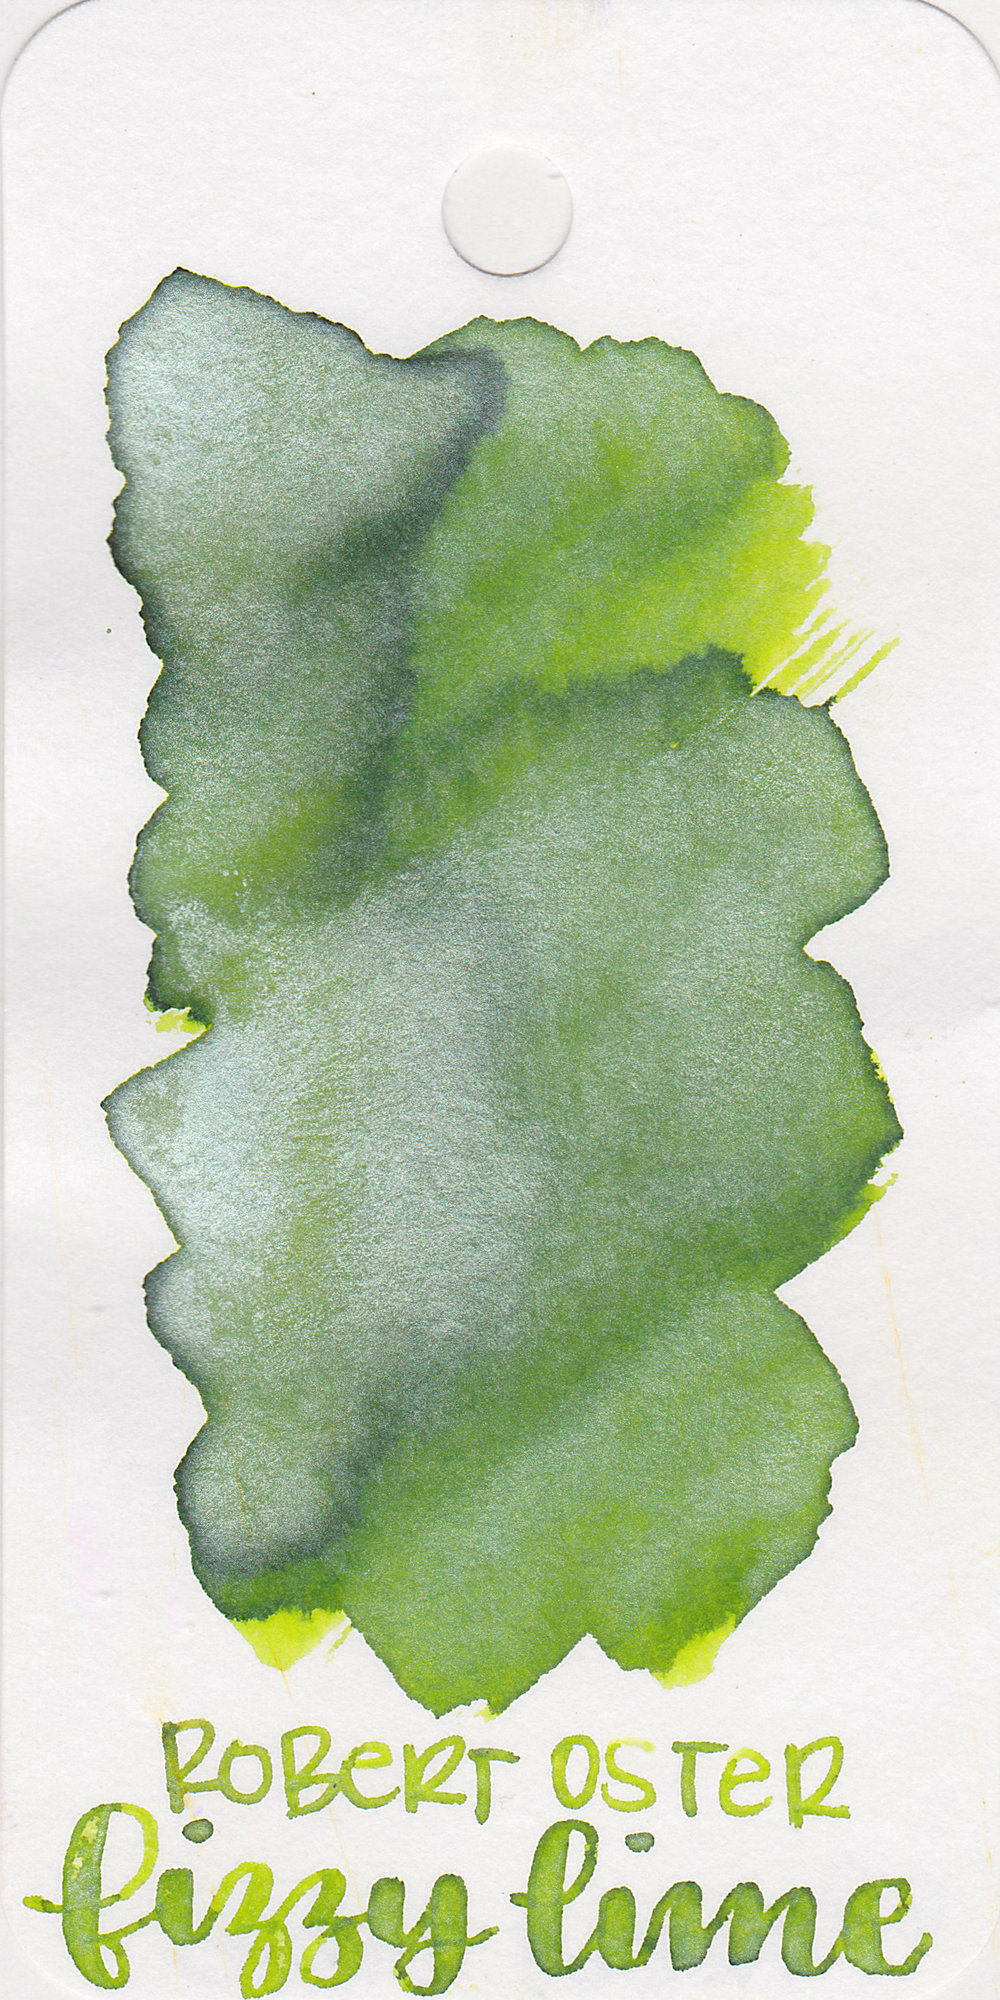 The color: - Fizzy Lime is a medium green with lots of shimmer. This ink really looks like the different shades of a lime.